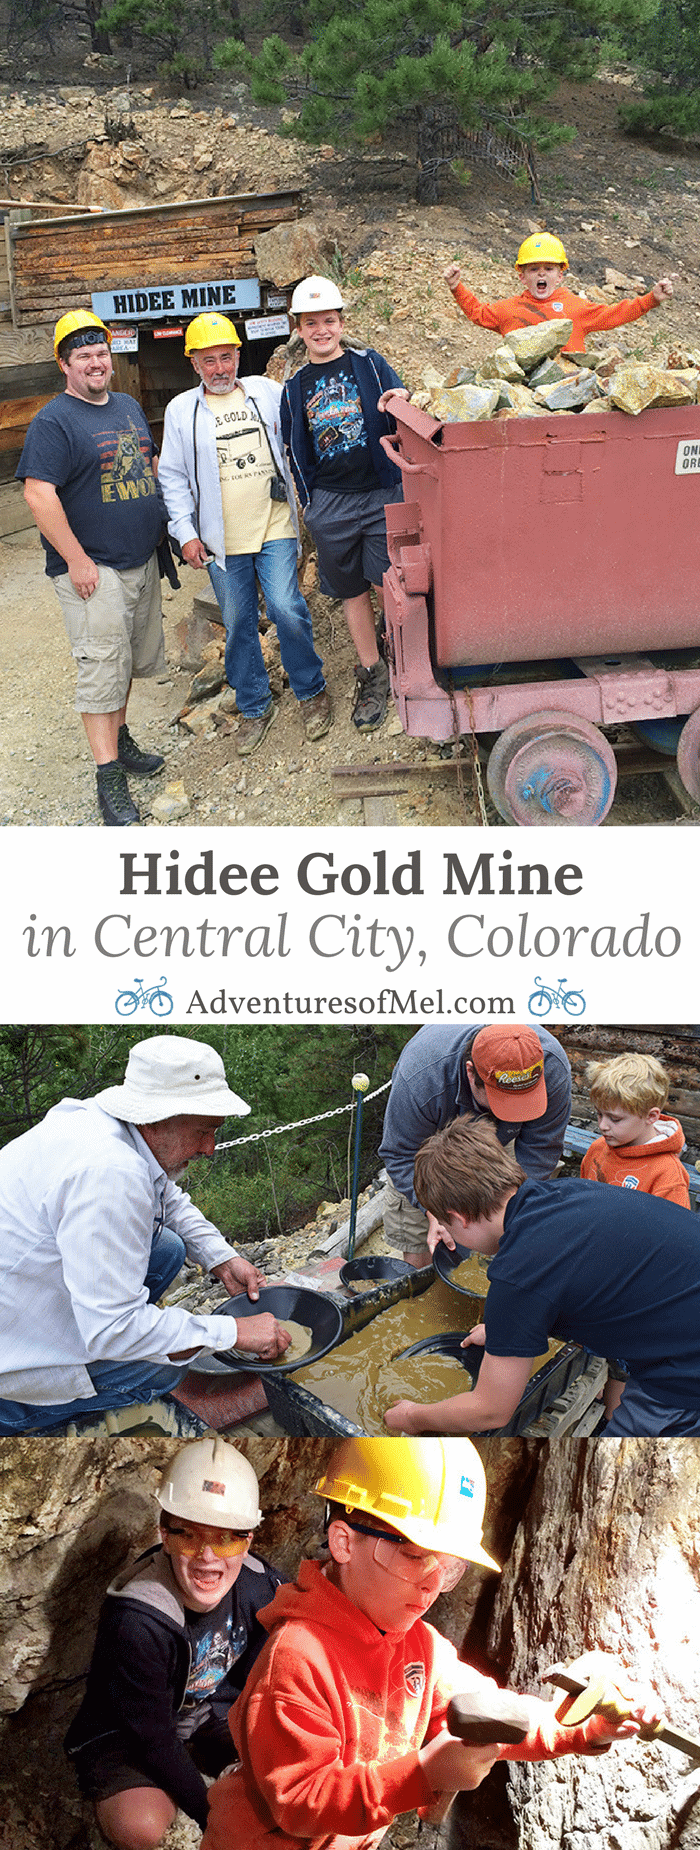 The Colorado mountains hold so many secrets and stories. Stories abound near Central City, Colorado at Hidee Gold Mine. It's an unforgettable experience, taking a tour with a veteran miner, learning the history of Hidee Mine, and mining your own gold. We couldn't stop talking about it; it was definitely one of our family's favorite memories from summer vacation.